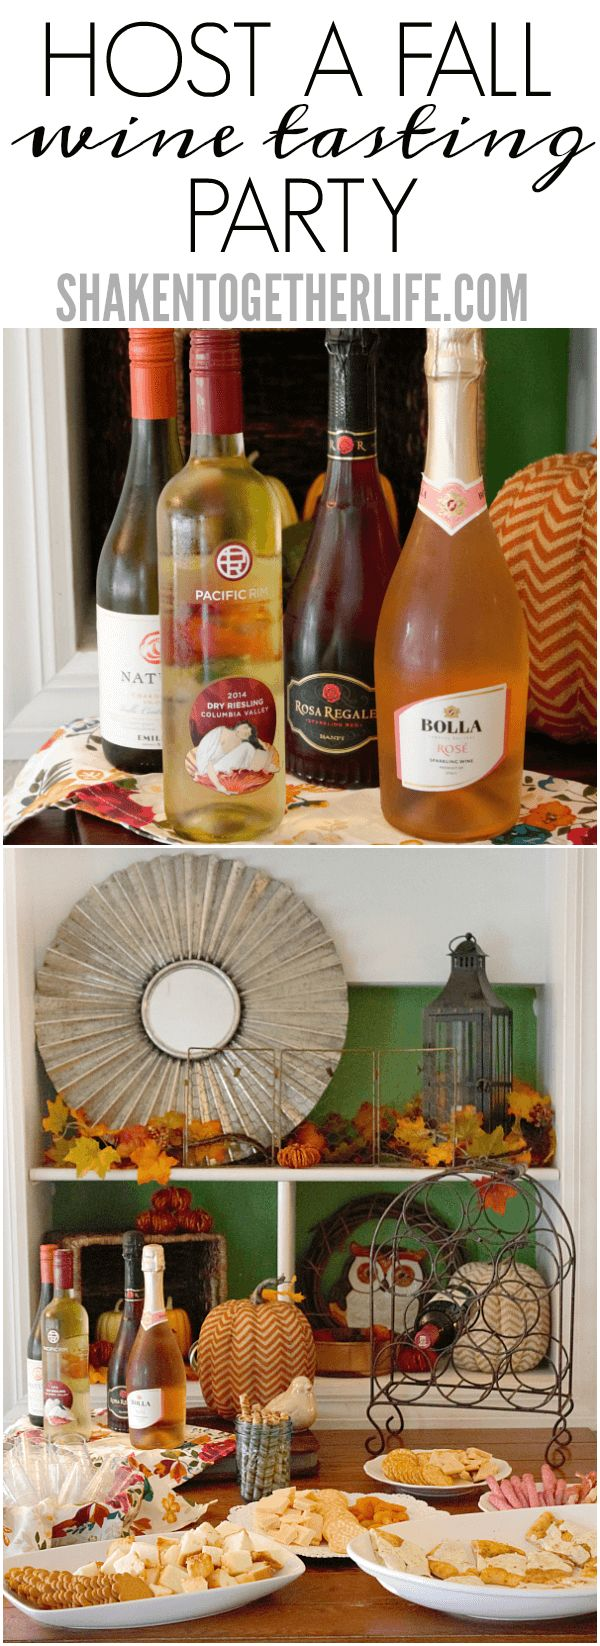 Host a Fall Wine Tasting Party! 6 wines, 6 easy appetizers ... way too much fun!